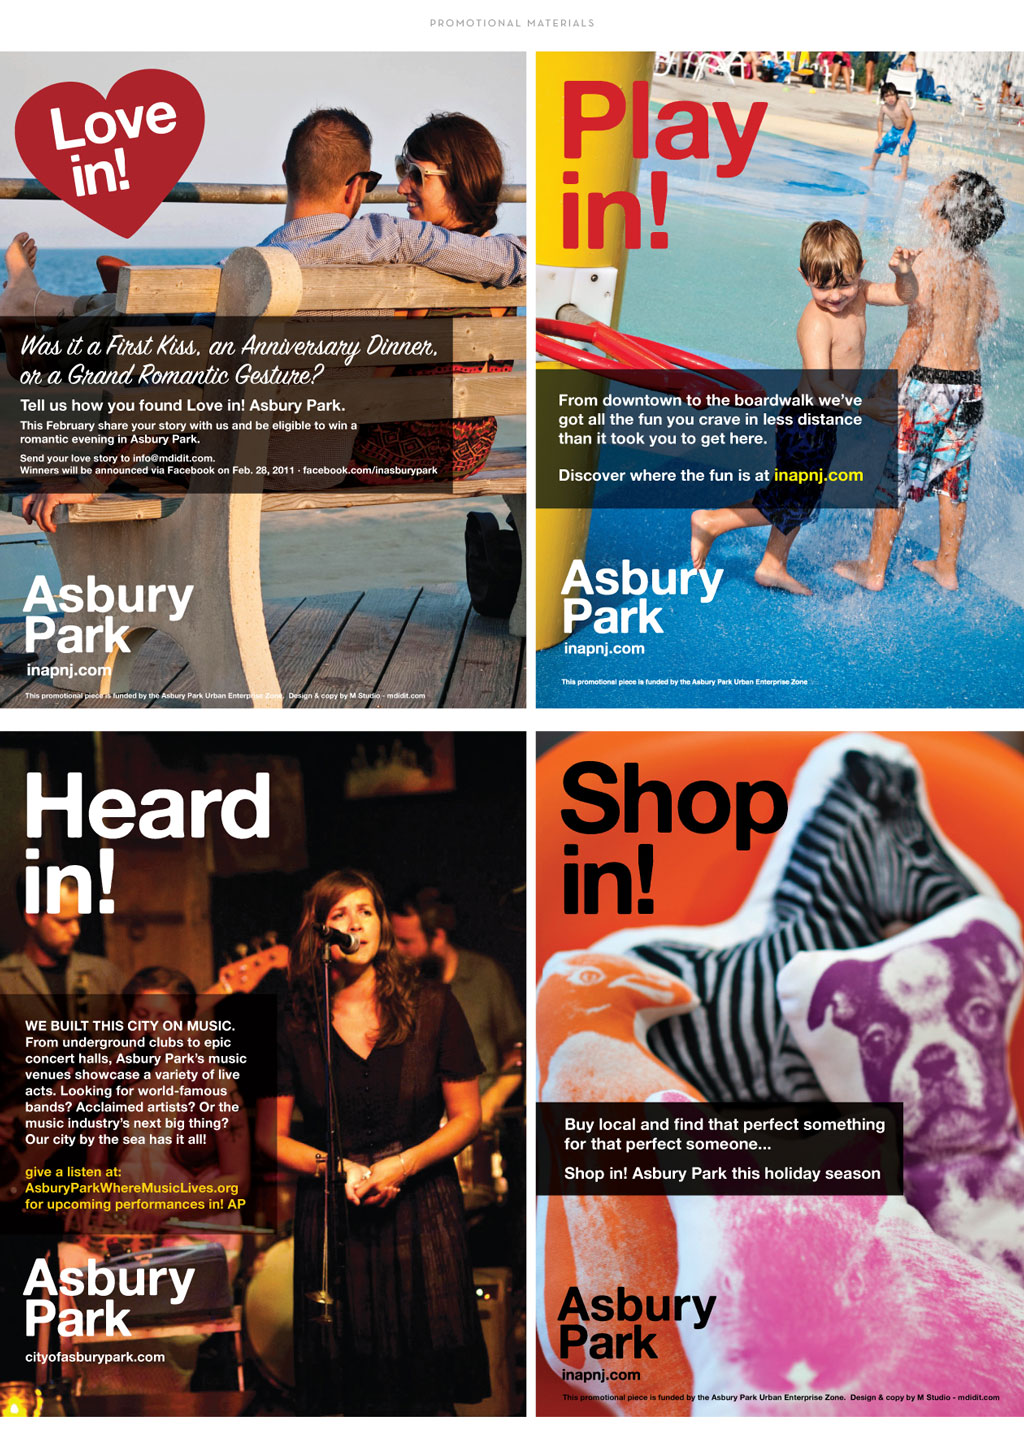 City of Asbury Park print advertisements by M studio